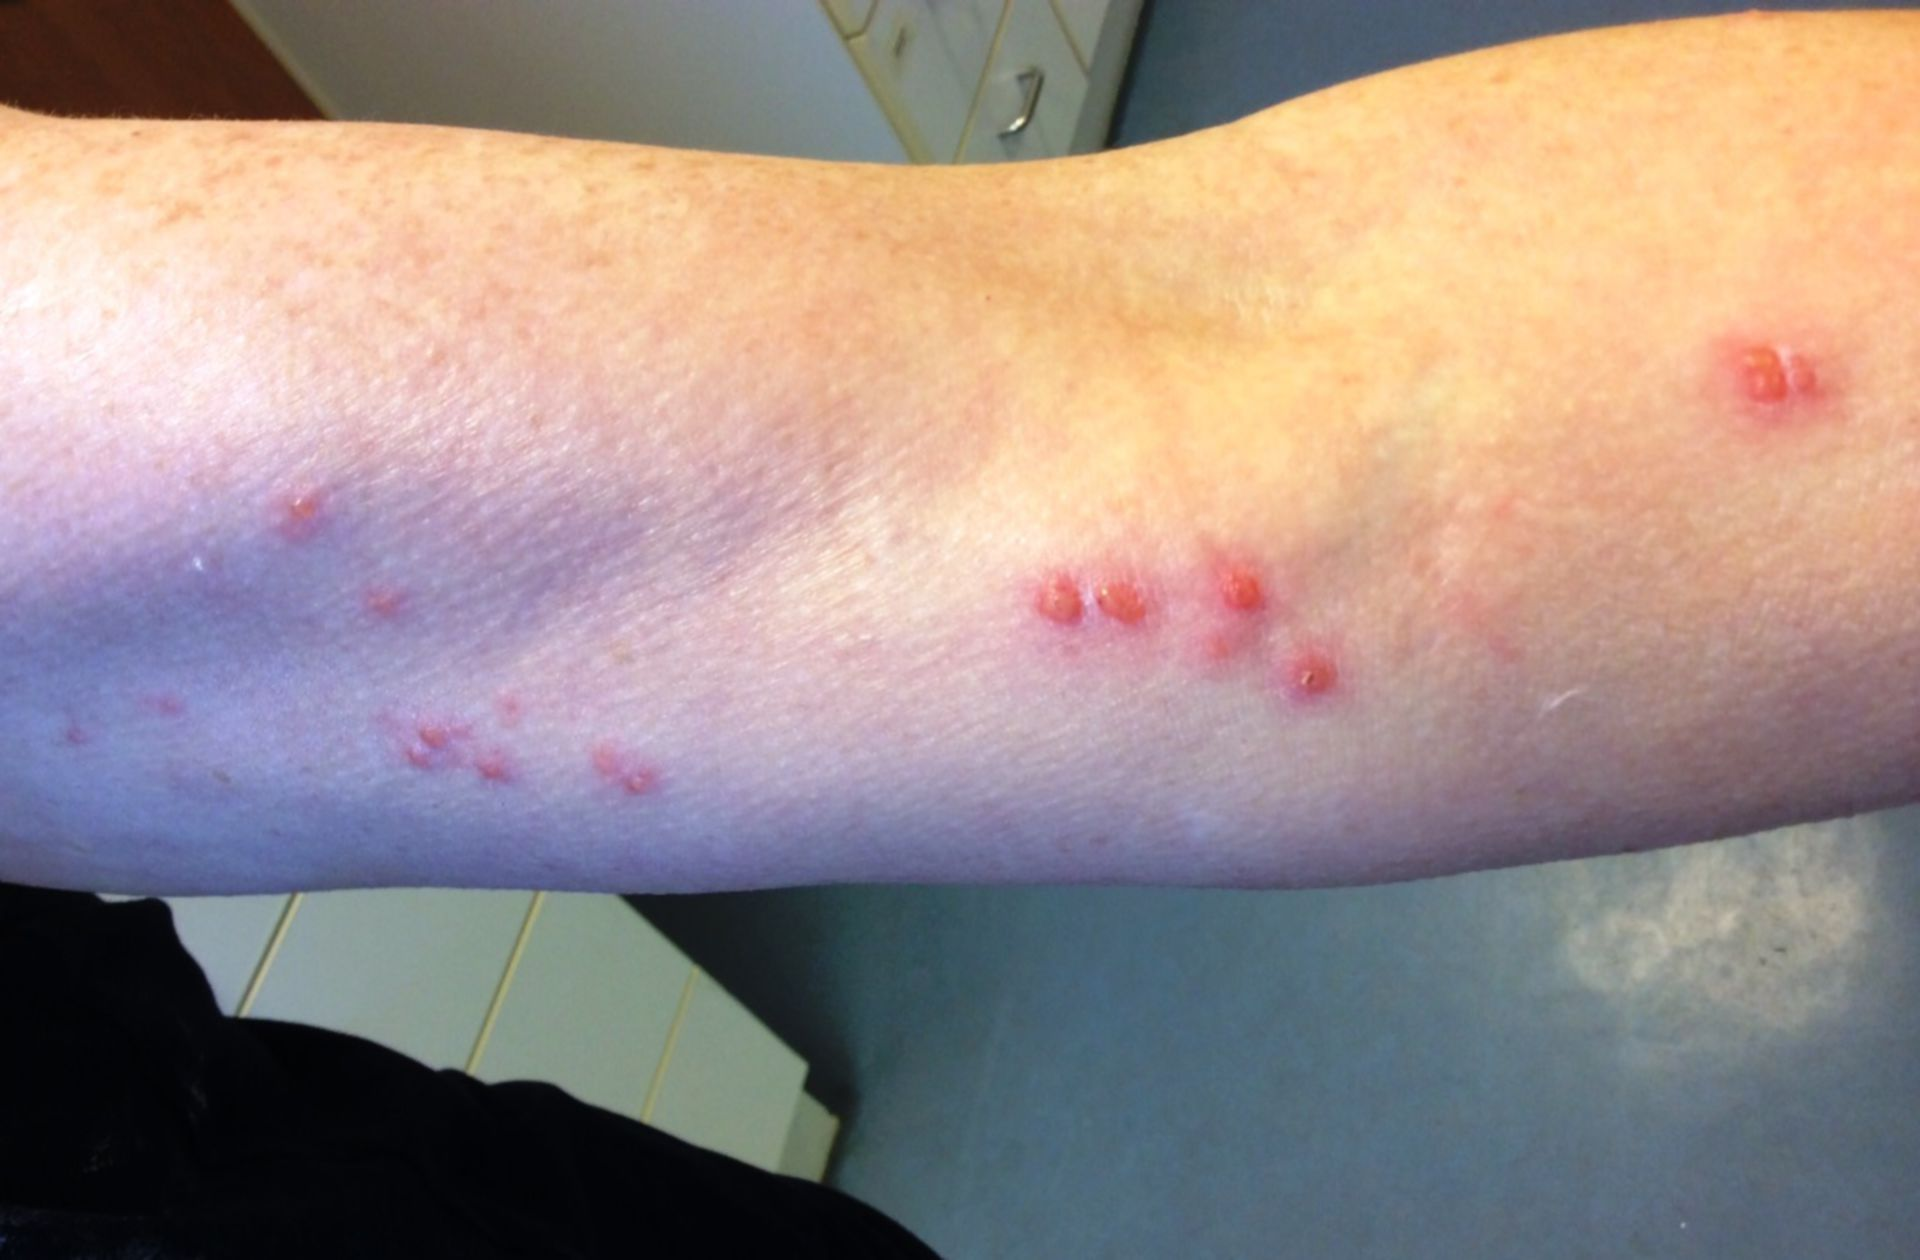 Exanthem linker Arm - Herpes zoster